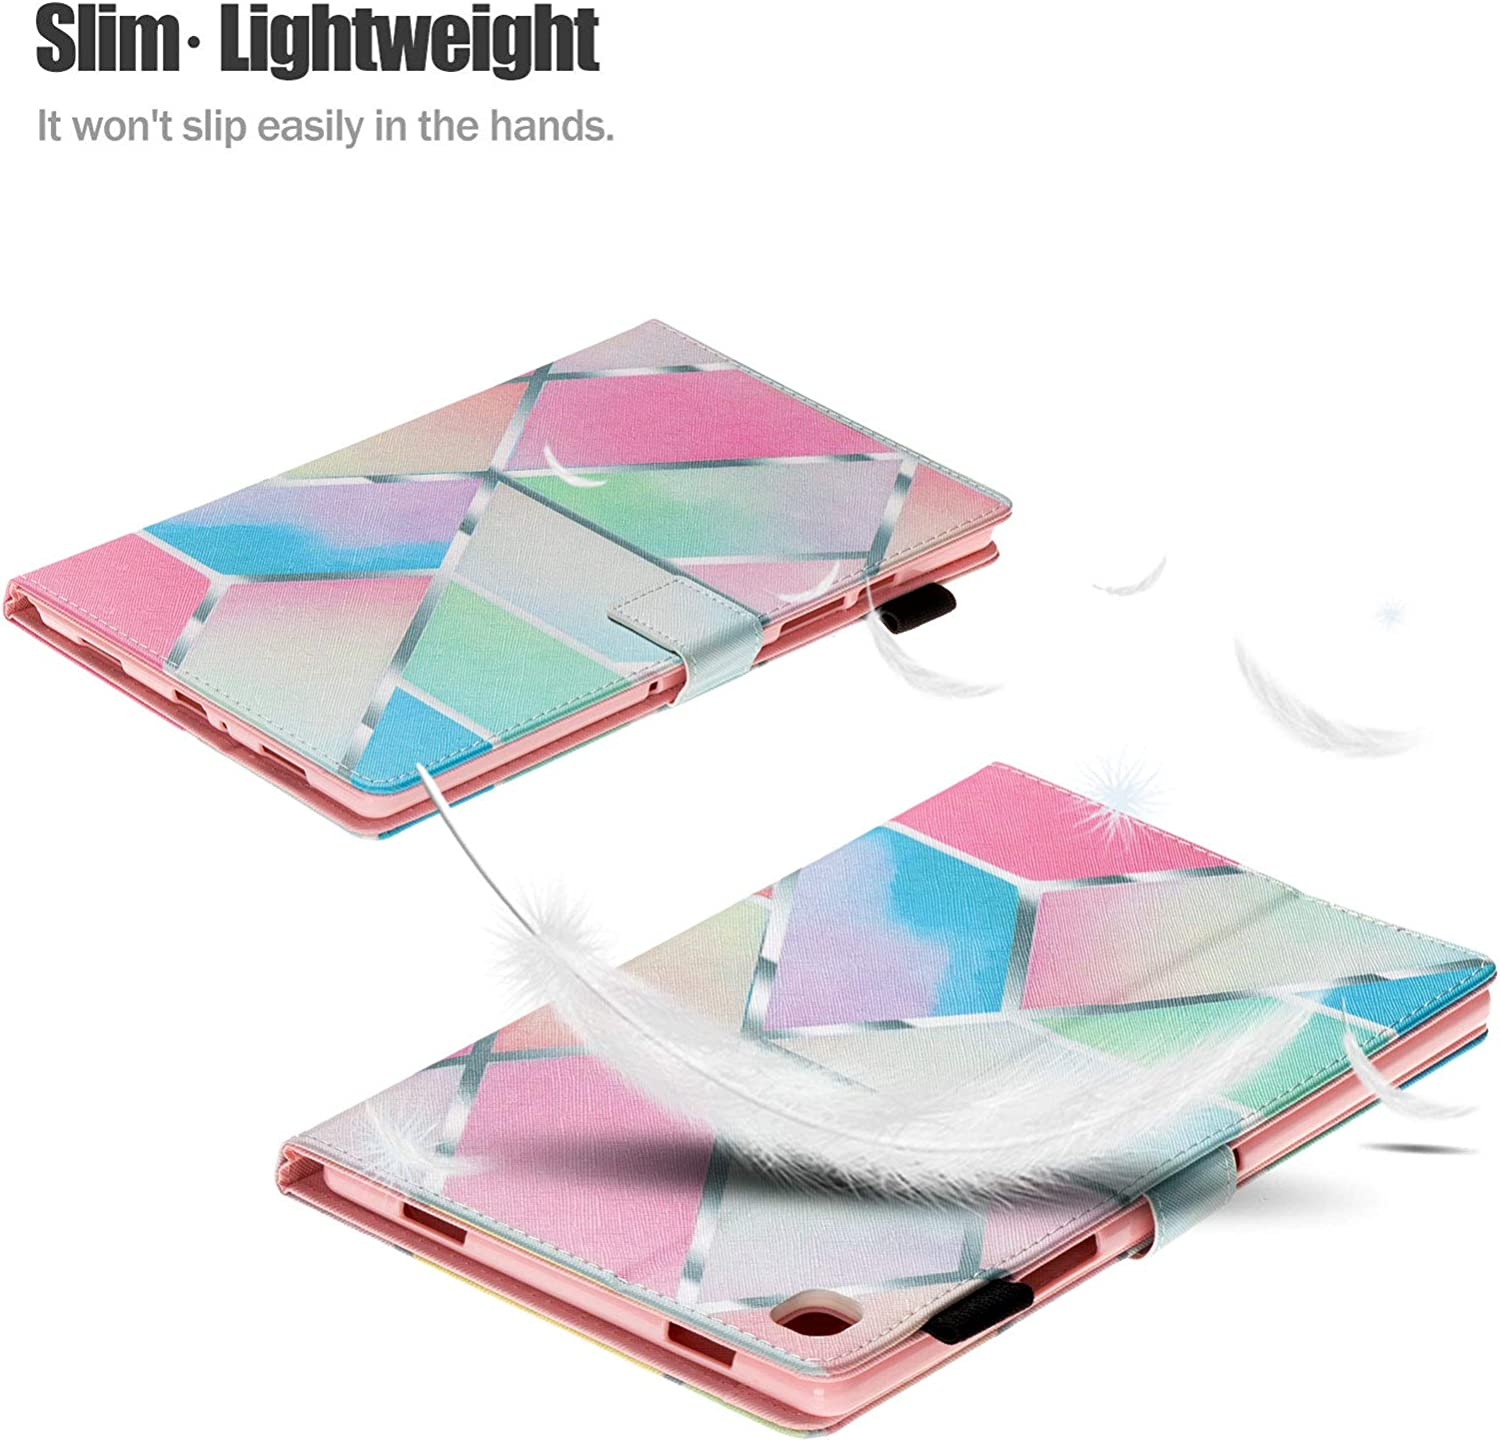 Uliking Case Compatible with Samsung Galaxy Tab A7 10.4 2020 SM-T500//507//T505 Rainbow PU Leather Shell Anti-slip Stand Folio Protective Cover with Auto Wake//Sleep Fit Galaxy Tab A7 2020